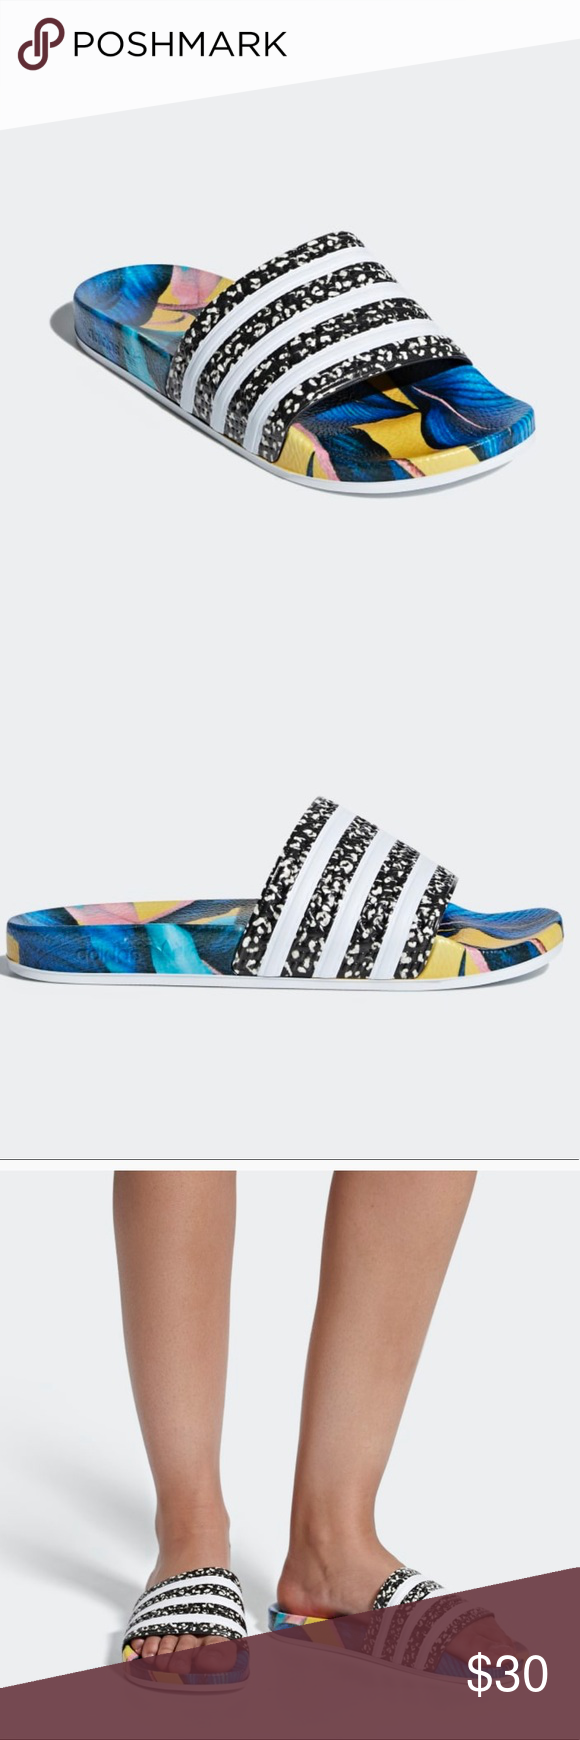 8717d623bf4f Adidas Adilette Slides Tropical Print NWT Size 7 Adidas slides. I bought  for myself but they are too big